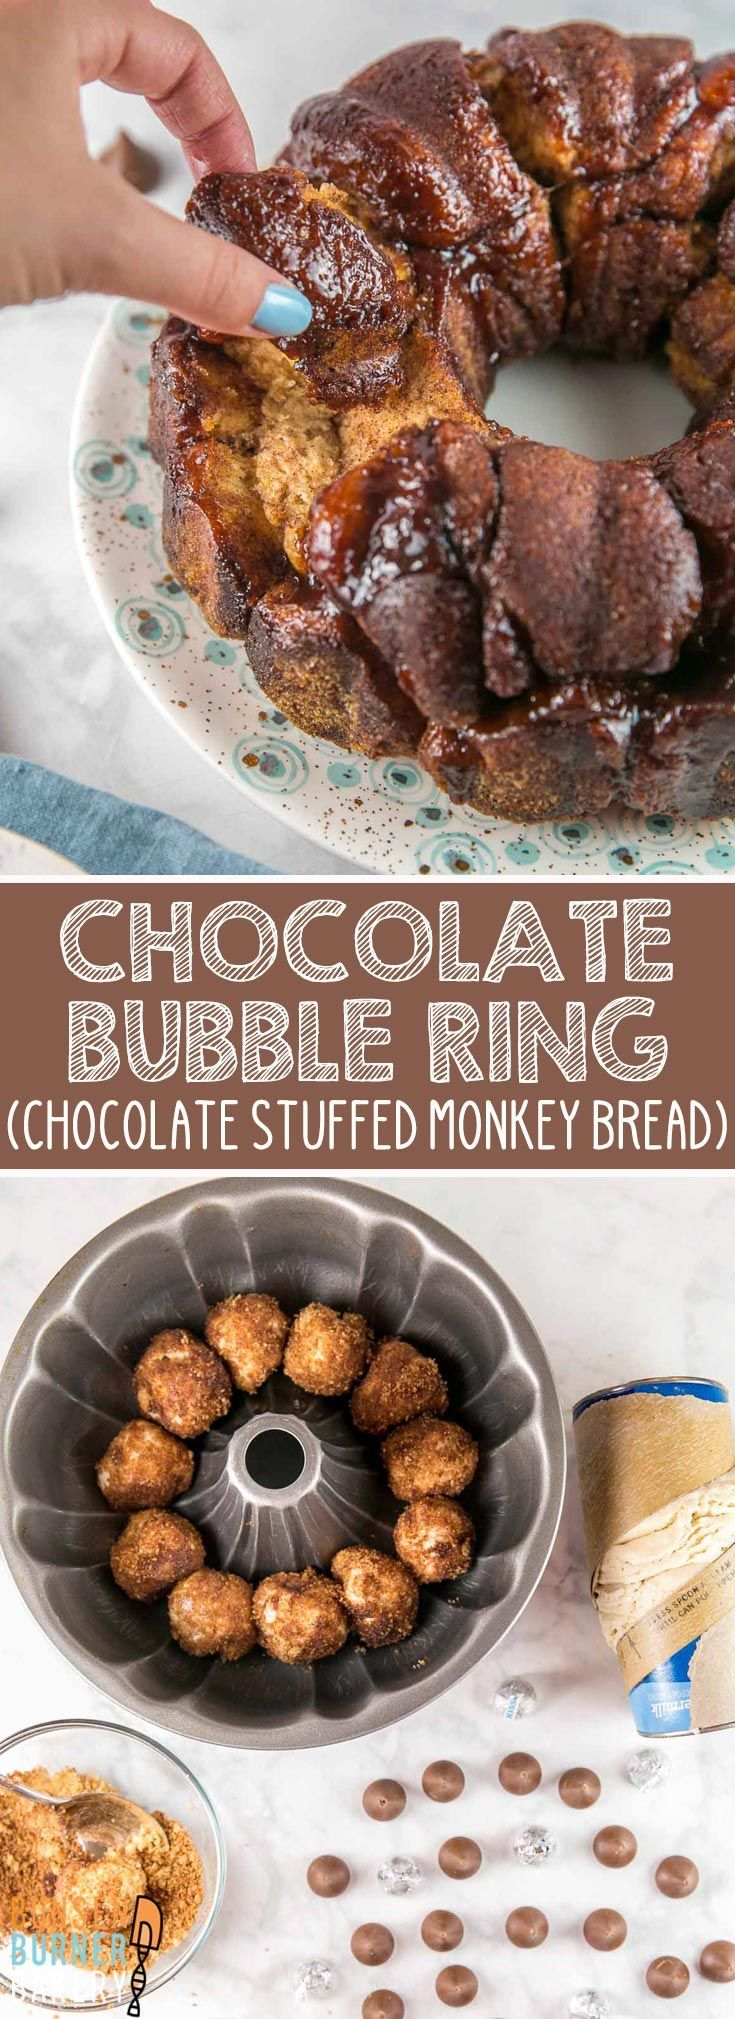 Chocolate Bubble Ring